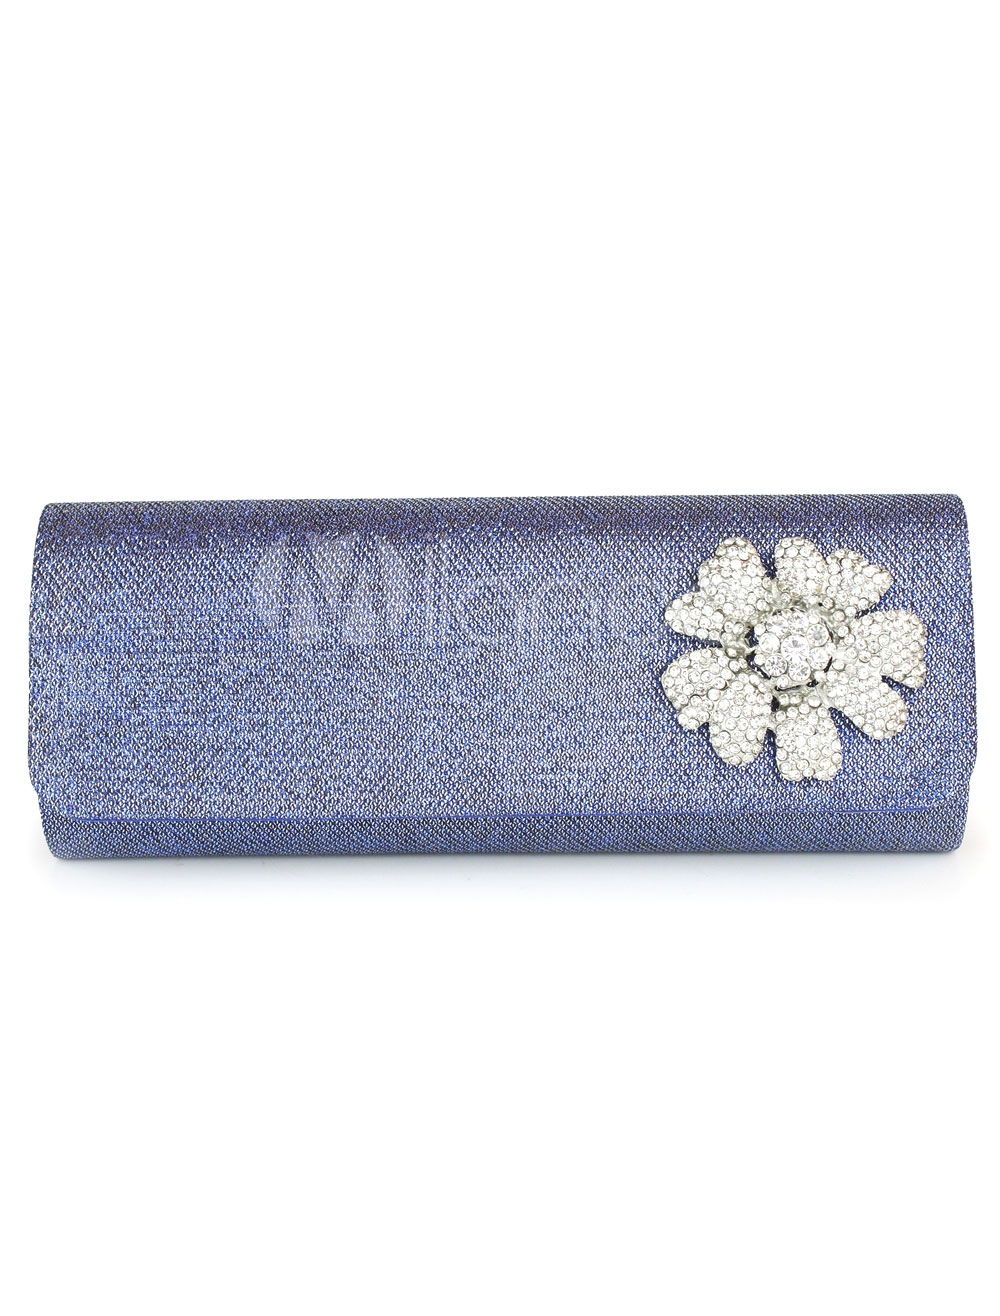 Buy Rhinestone Detailing Evening Bag with Flower Decor for $16.09 in Milanoo store